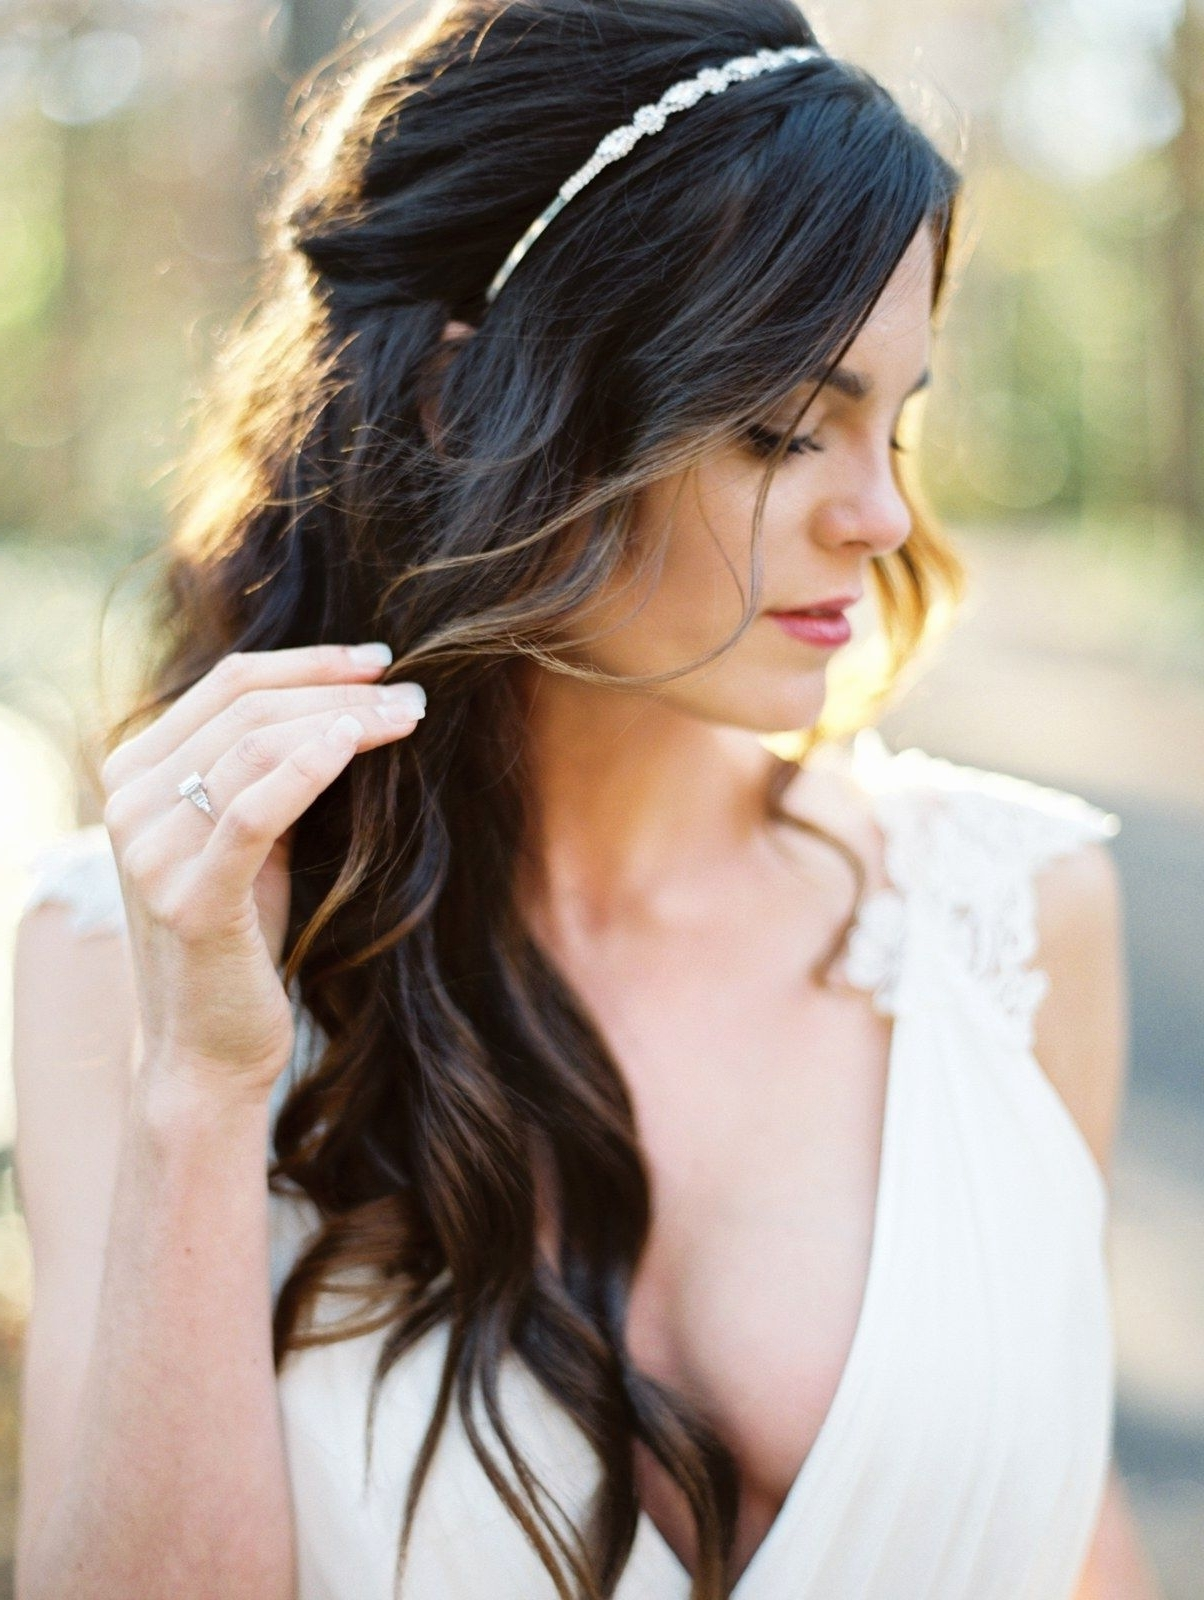 Well Liked Beach Wedding Hairstyles For Bridesmaids Within Inspiring Beach Wedding Hair Half Up Down Hairstyles Pic Of Bride (View 13 of 15)